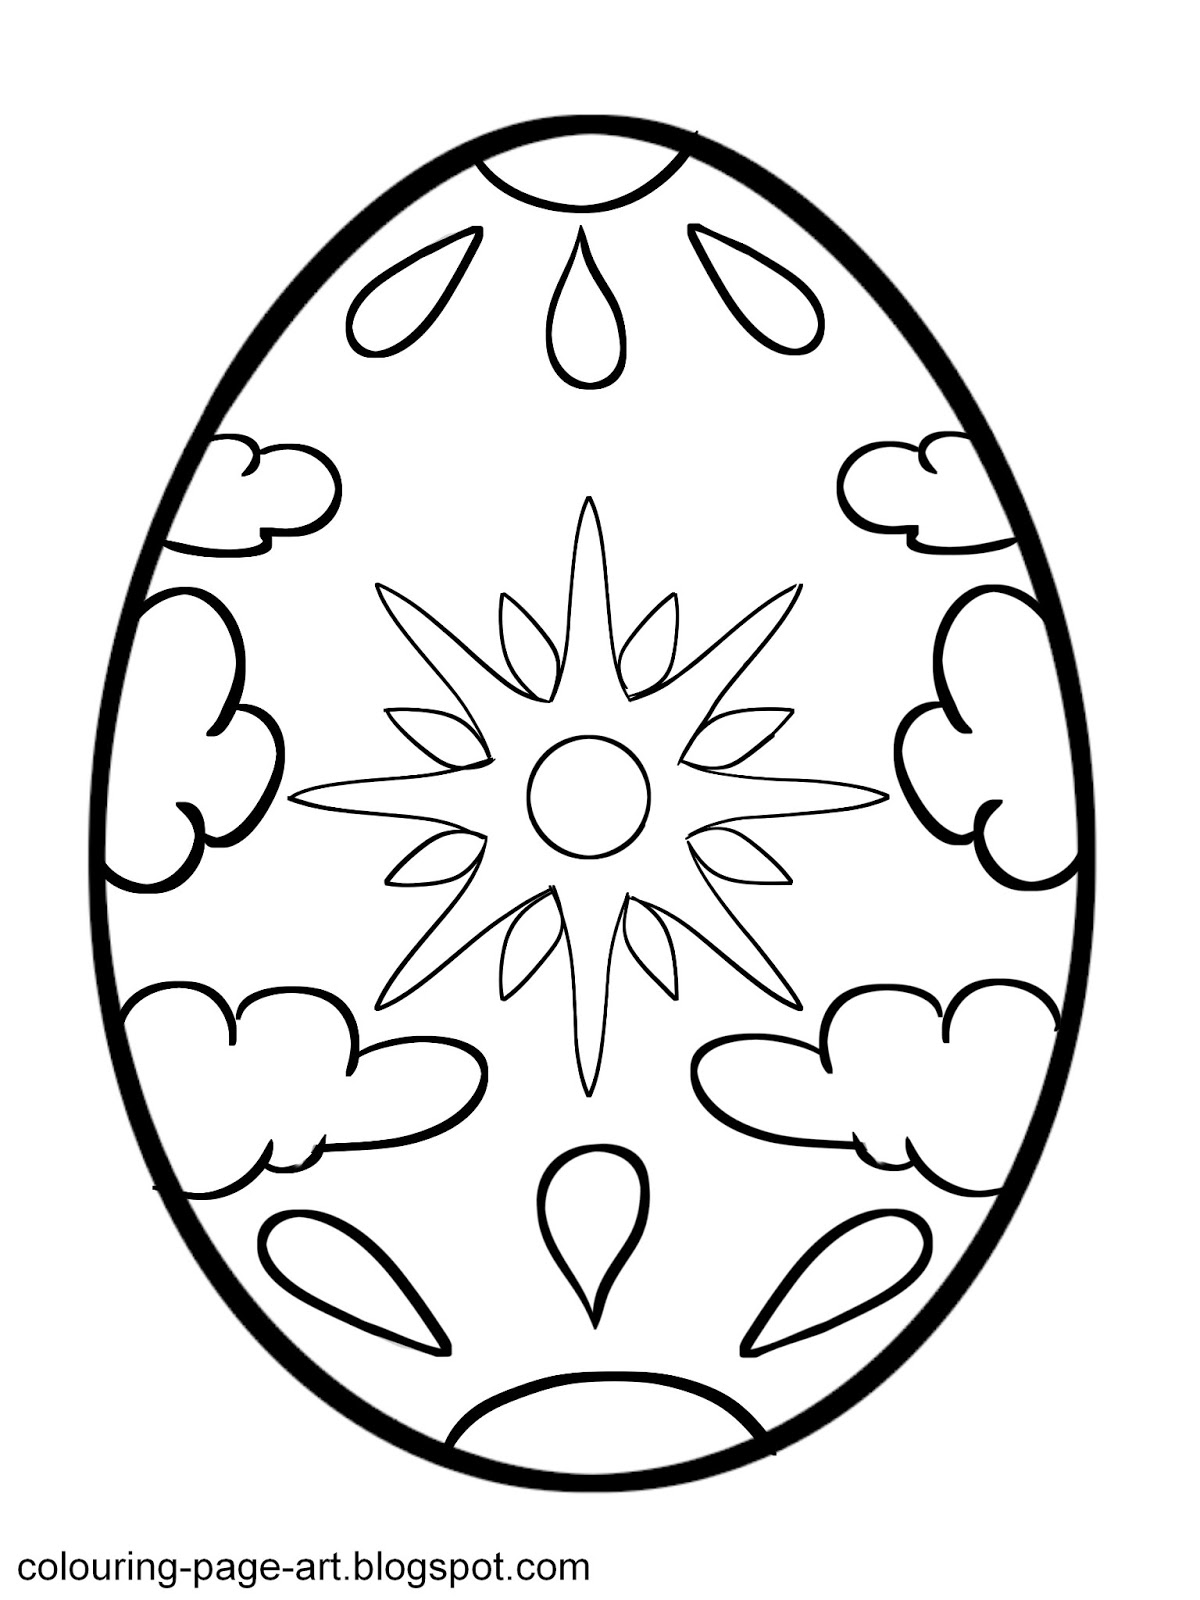 Sun And Clouds Easter Egg Colouring Page Colouring Page Art Egg Colouring Page